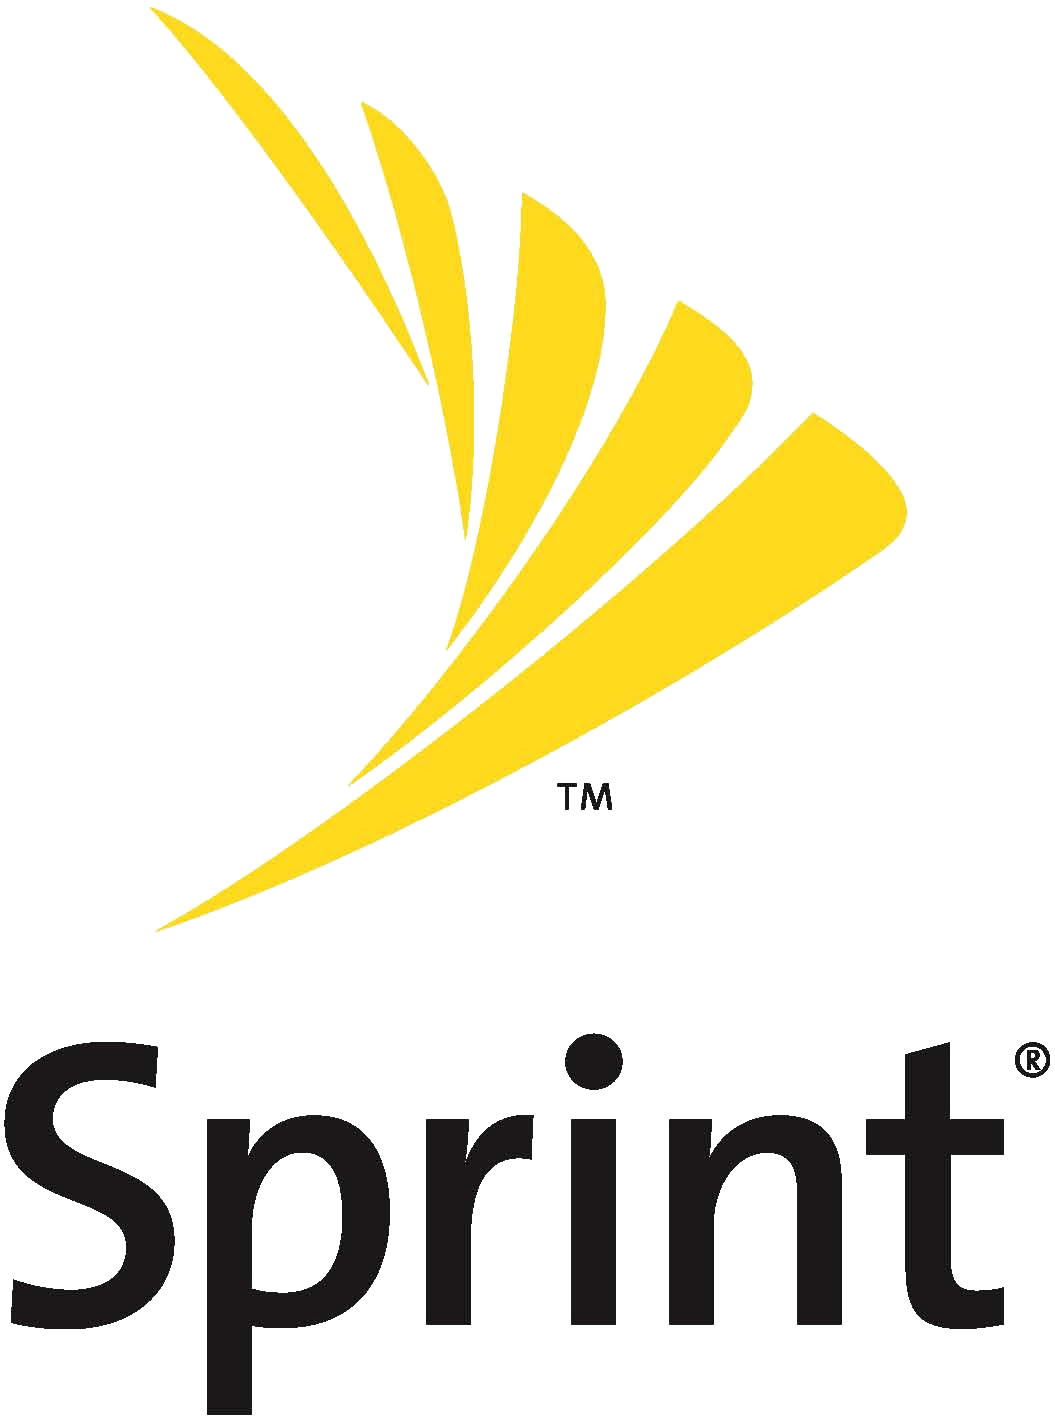 Sprint-SoftBank Purchase Approved by DOJ, SoftBank Begins Talks with T-Mobile